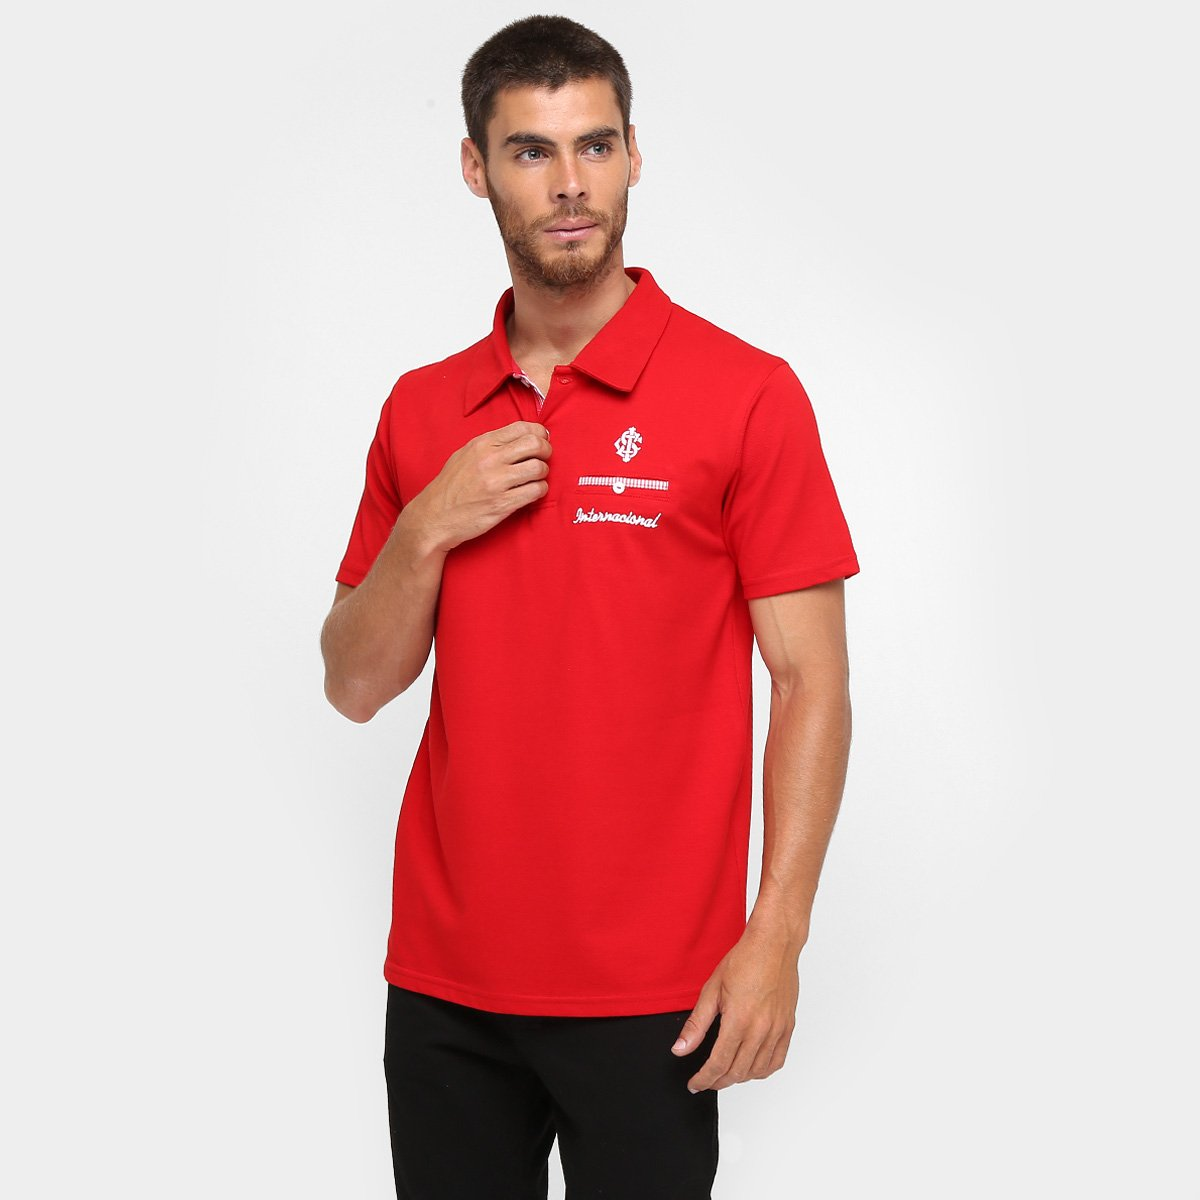 Camisa Polo Internacional Podium Masculina 9cd546e2cce30